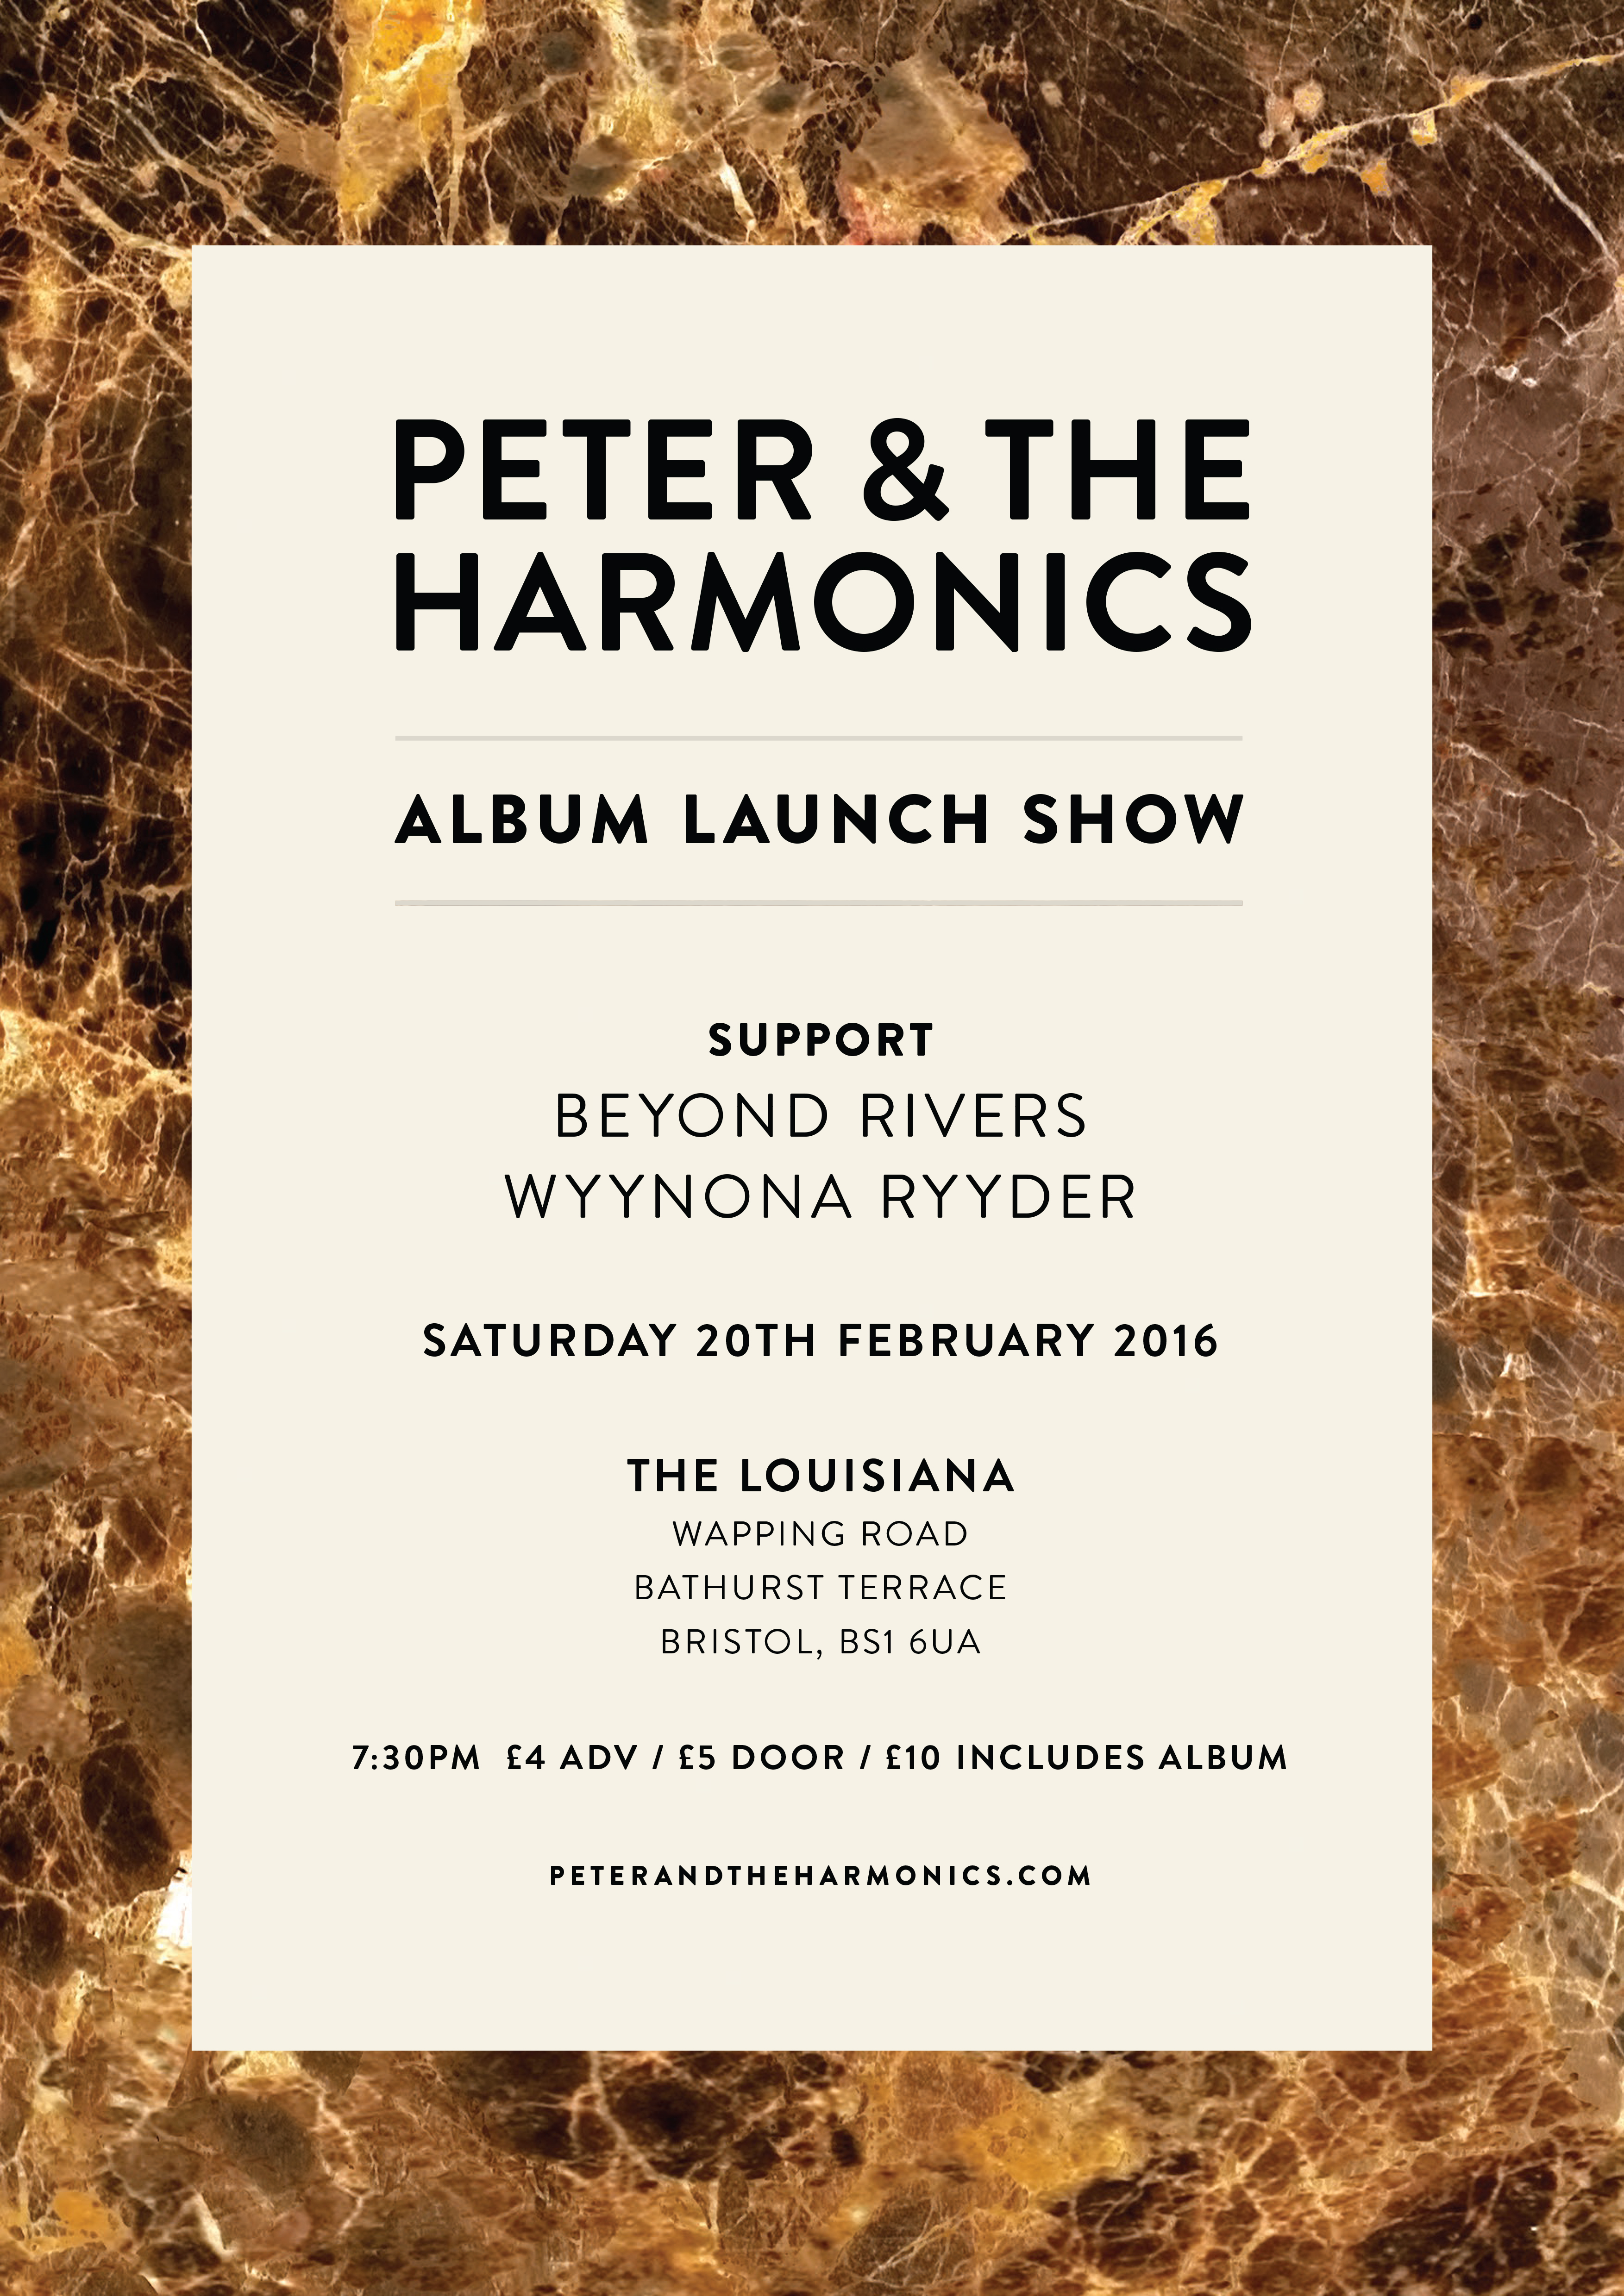 Peter and the harmonics